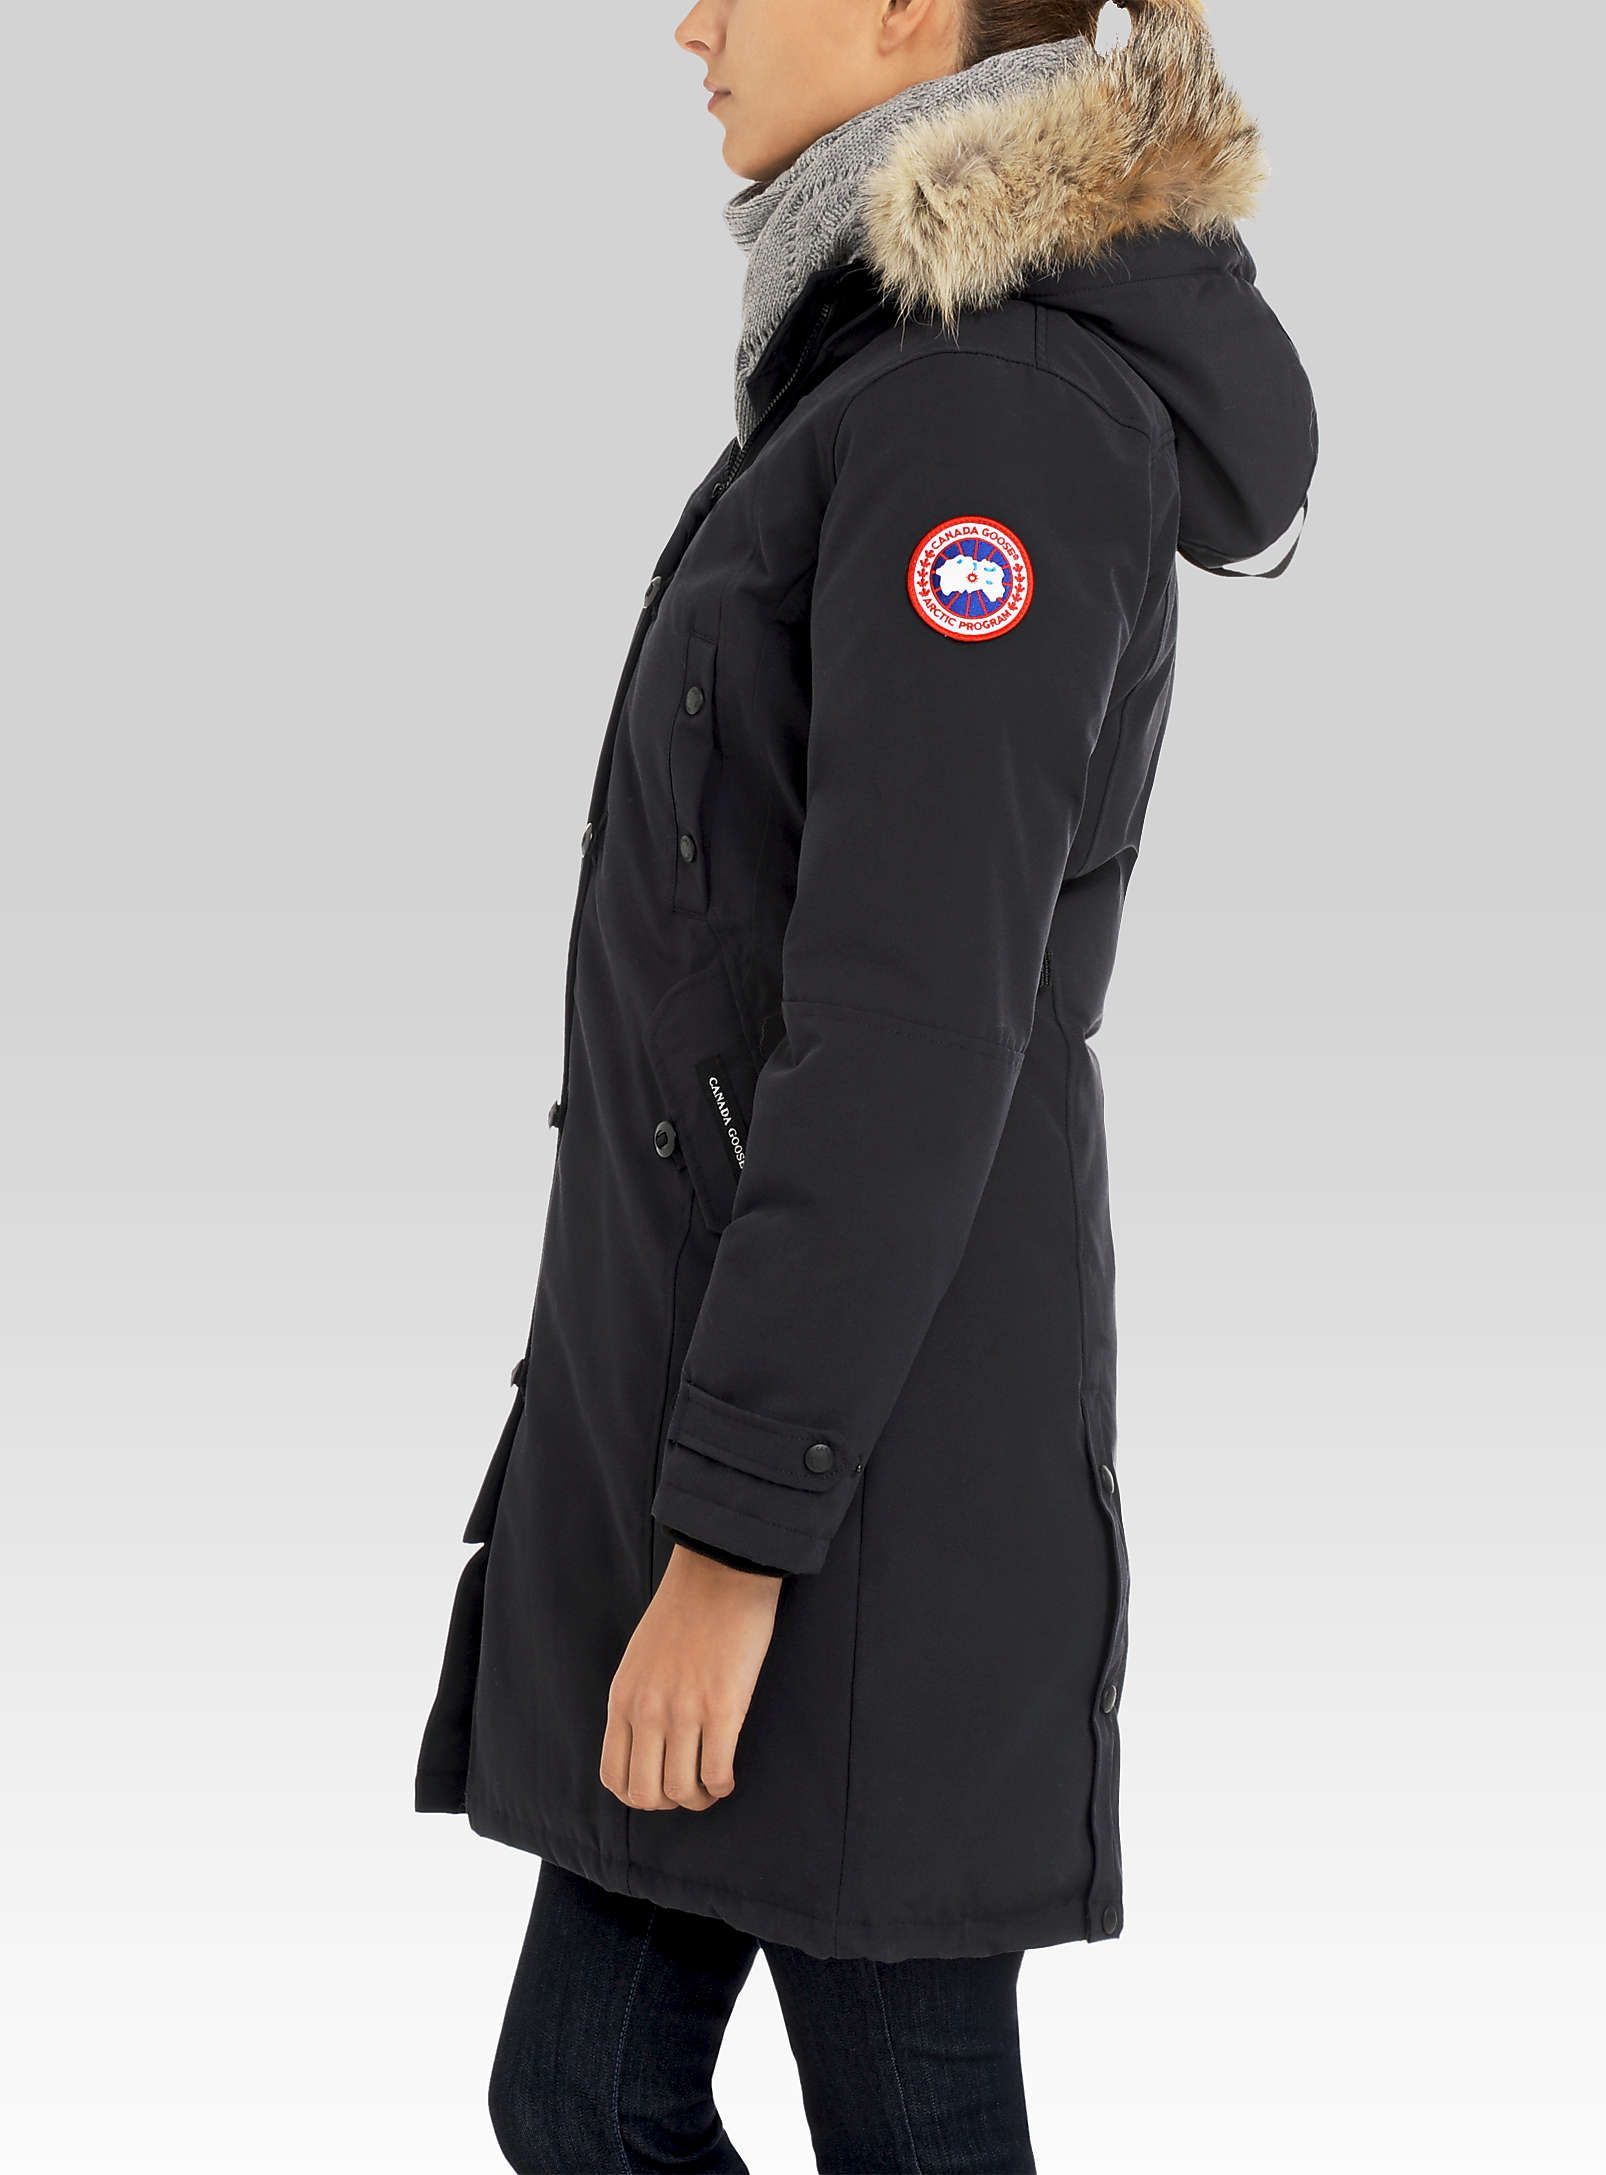 Canada Goose Kensington Parka For When And If I Ever Become A New Yorker Canadagoose Online Cz Tf Kensington Parka Canada Goose Kensington Moncler Jacket Mens